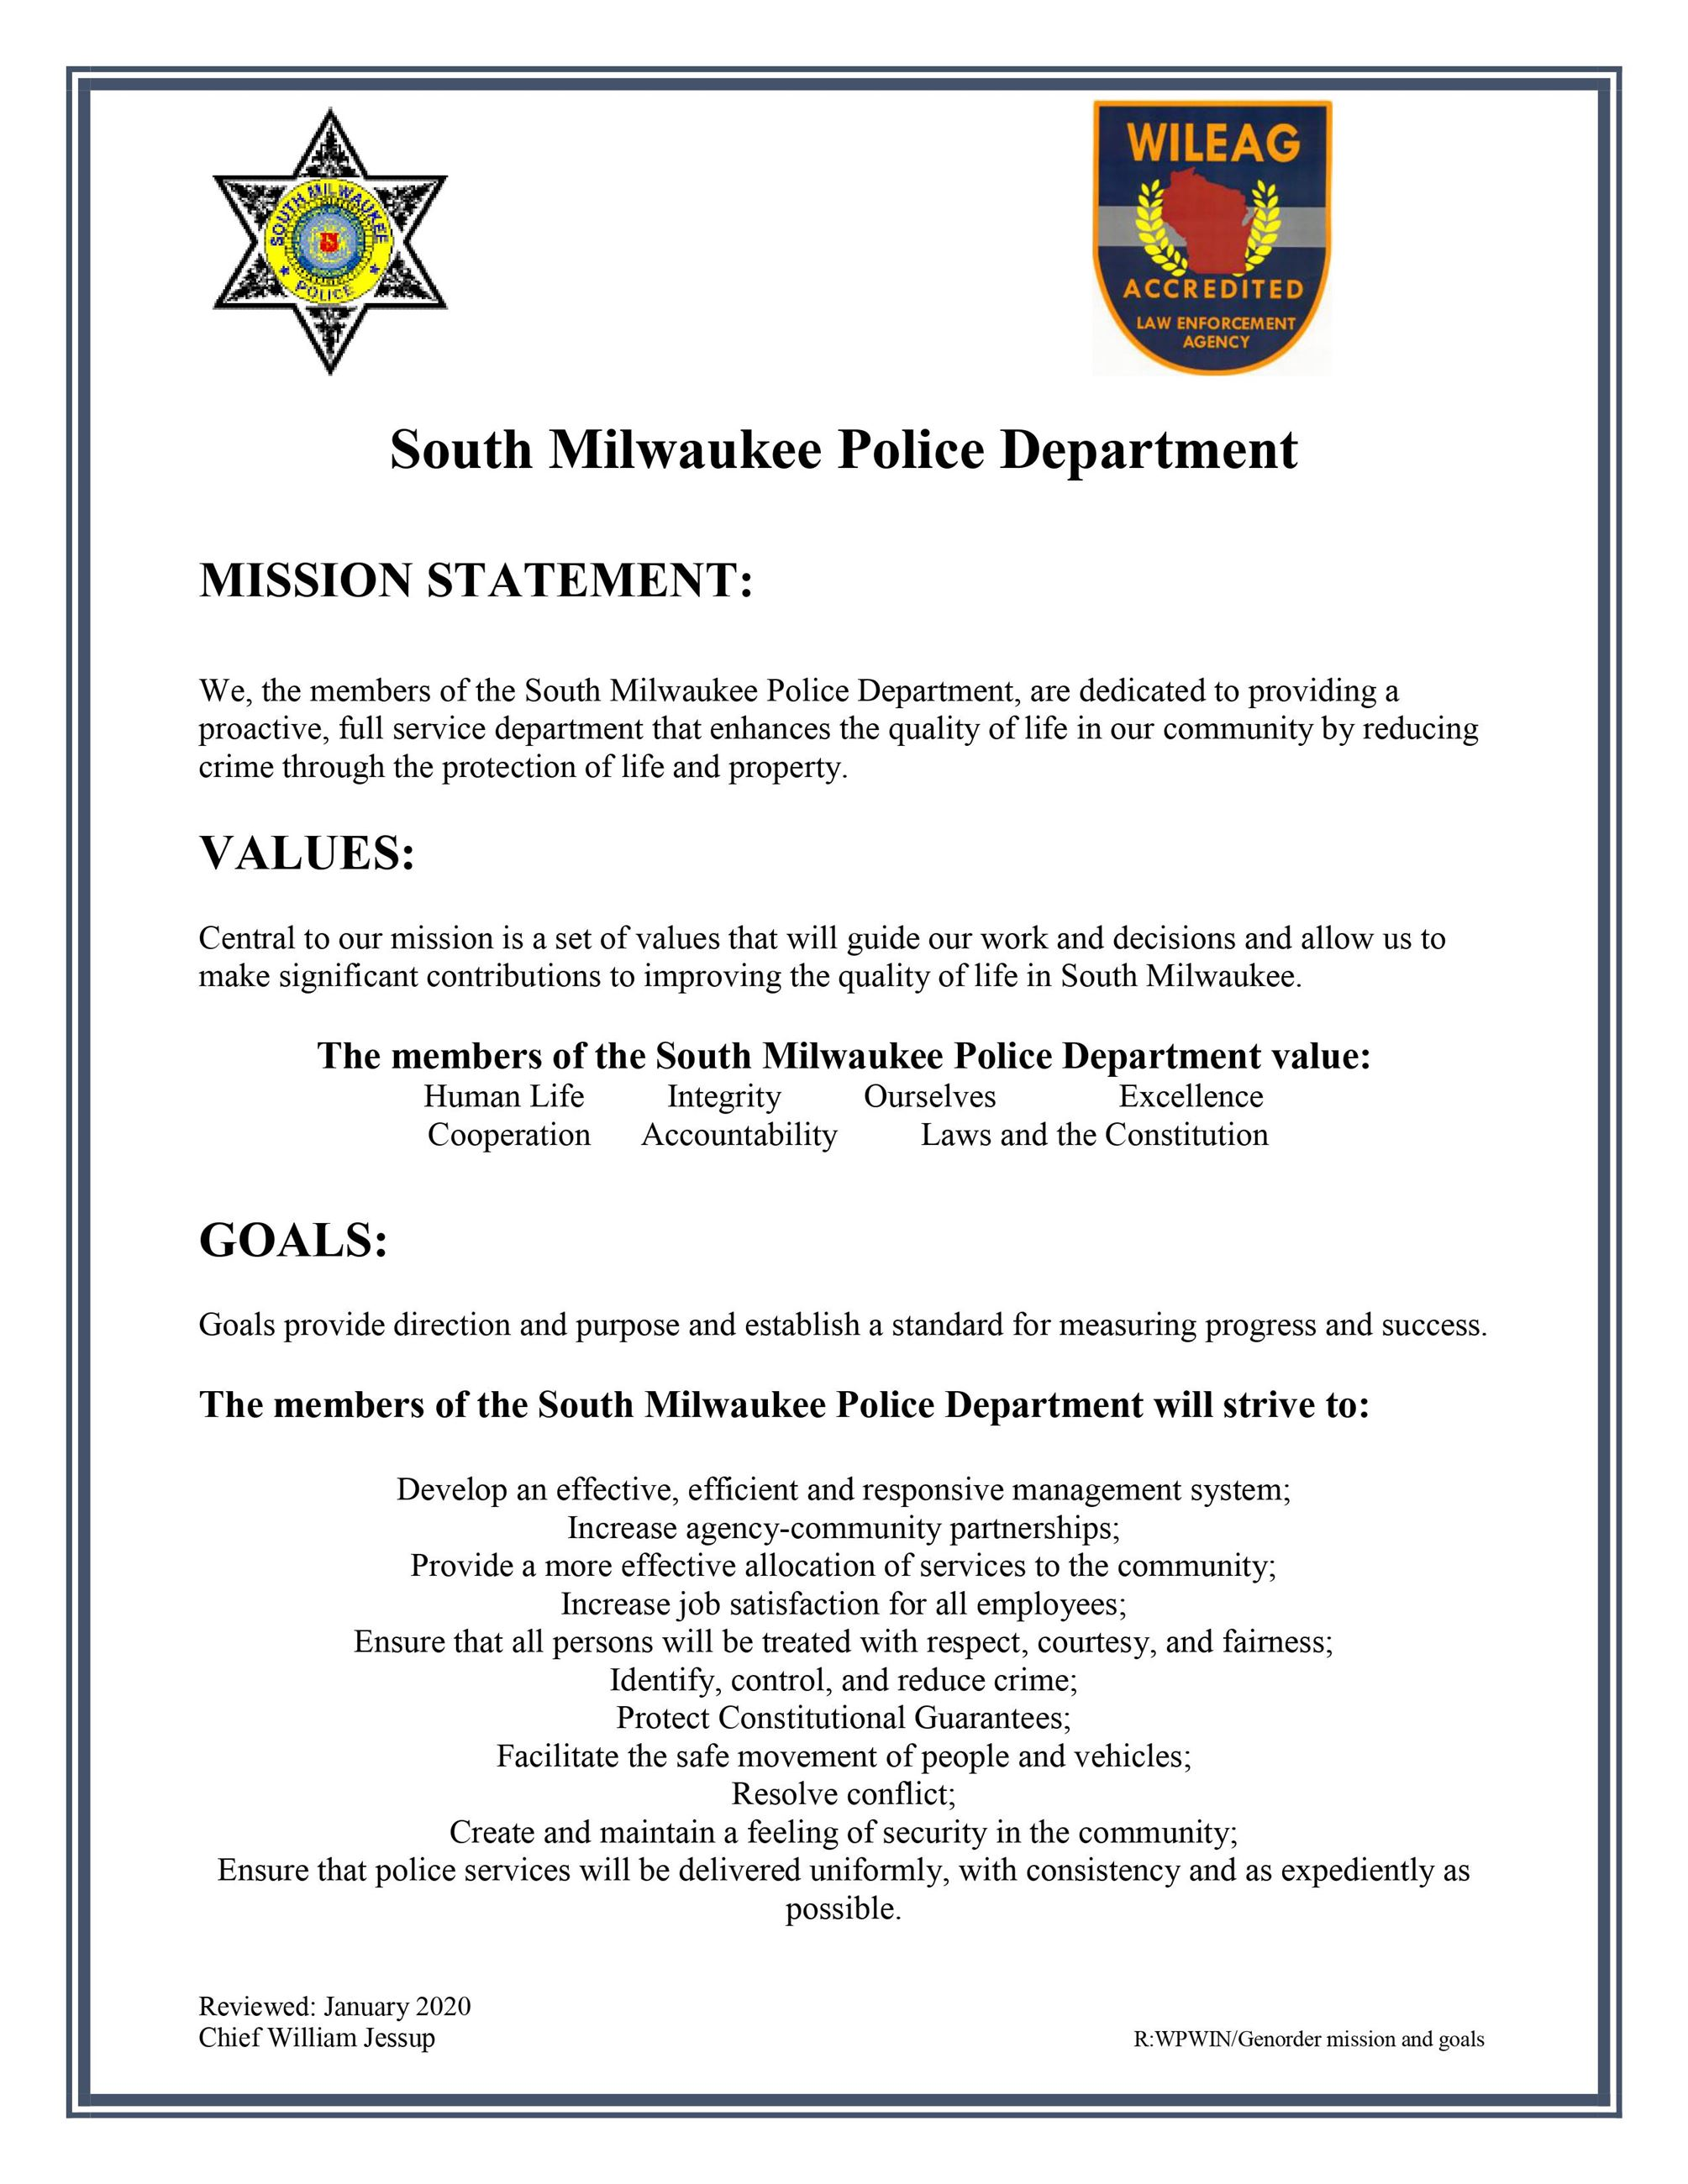 South Milwaukee Police Department's Mission and Goals 2020